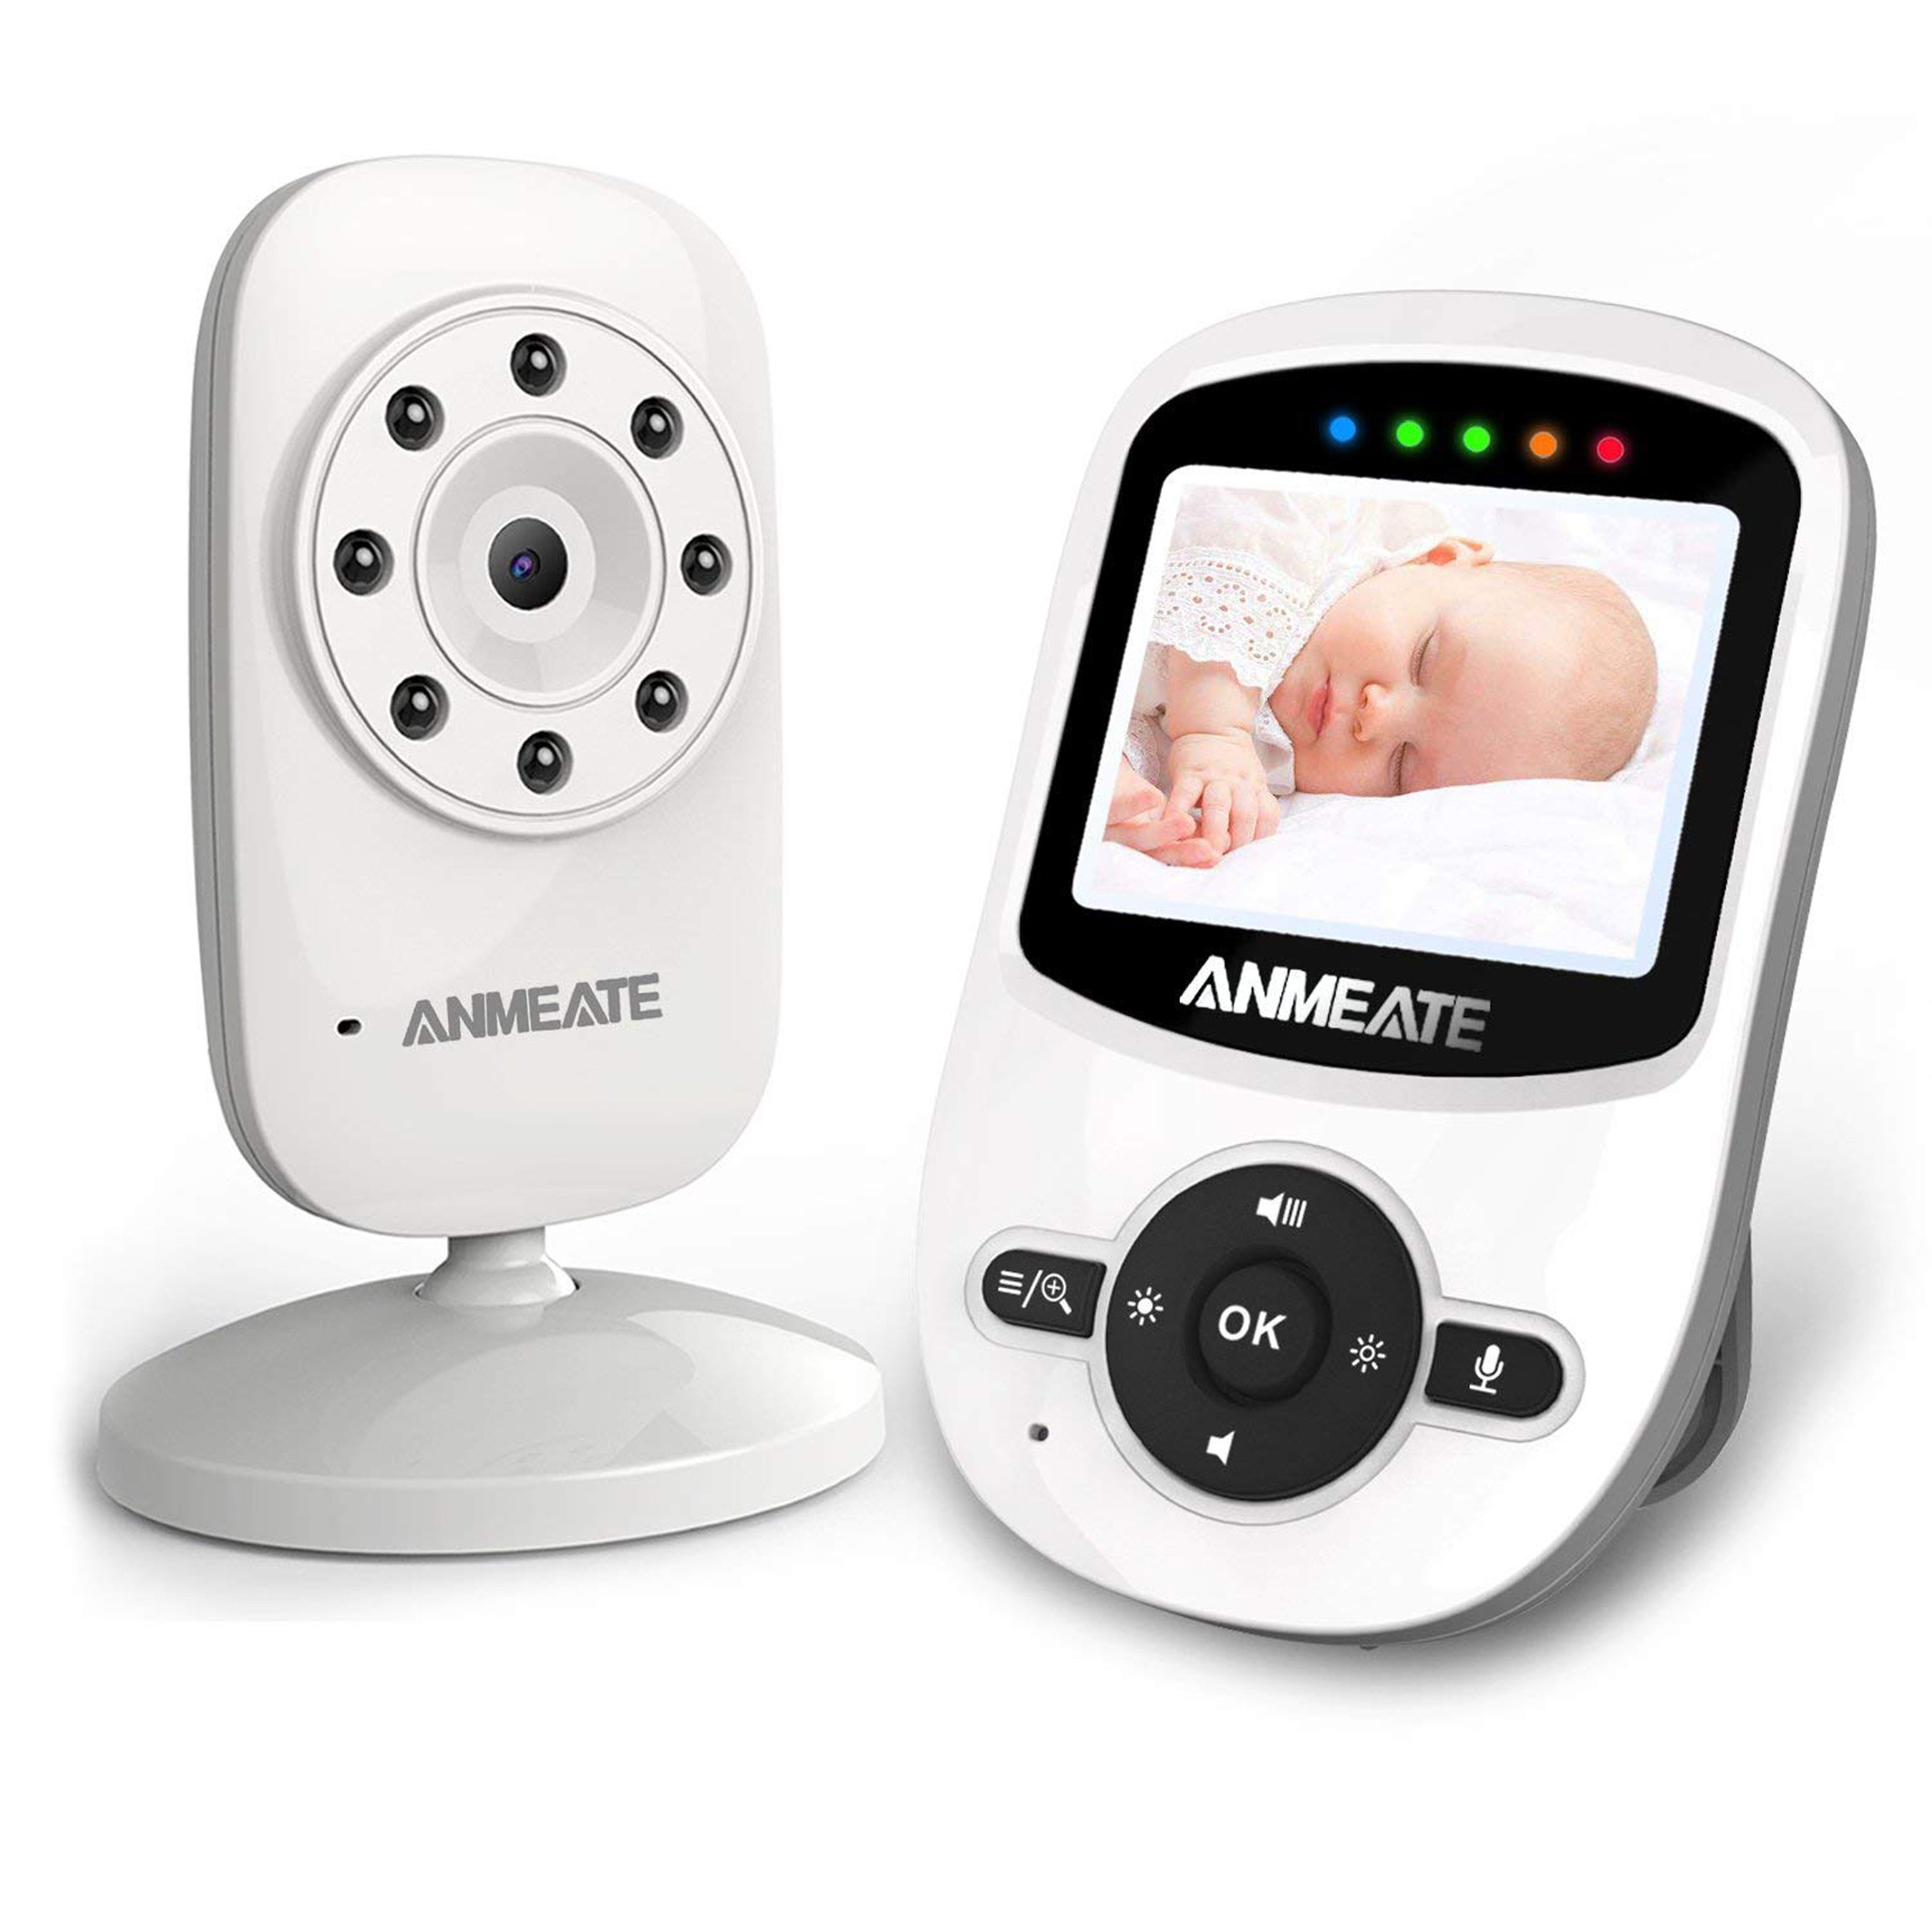 ANMEATE Video Baby Monitor with Digital Camera